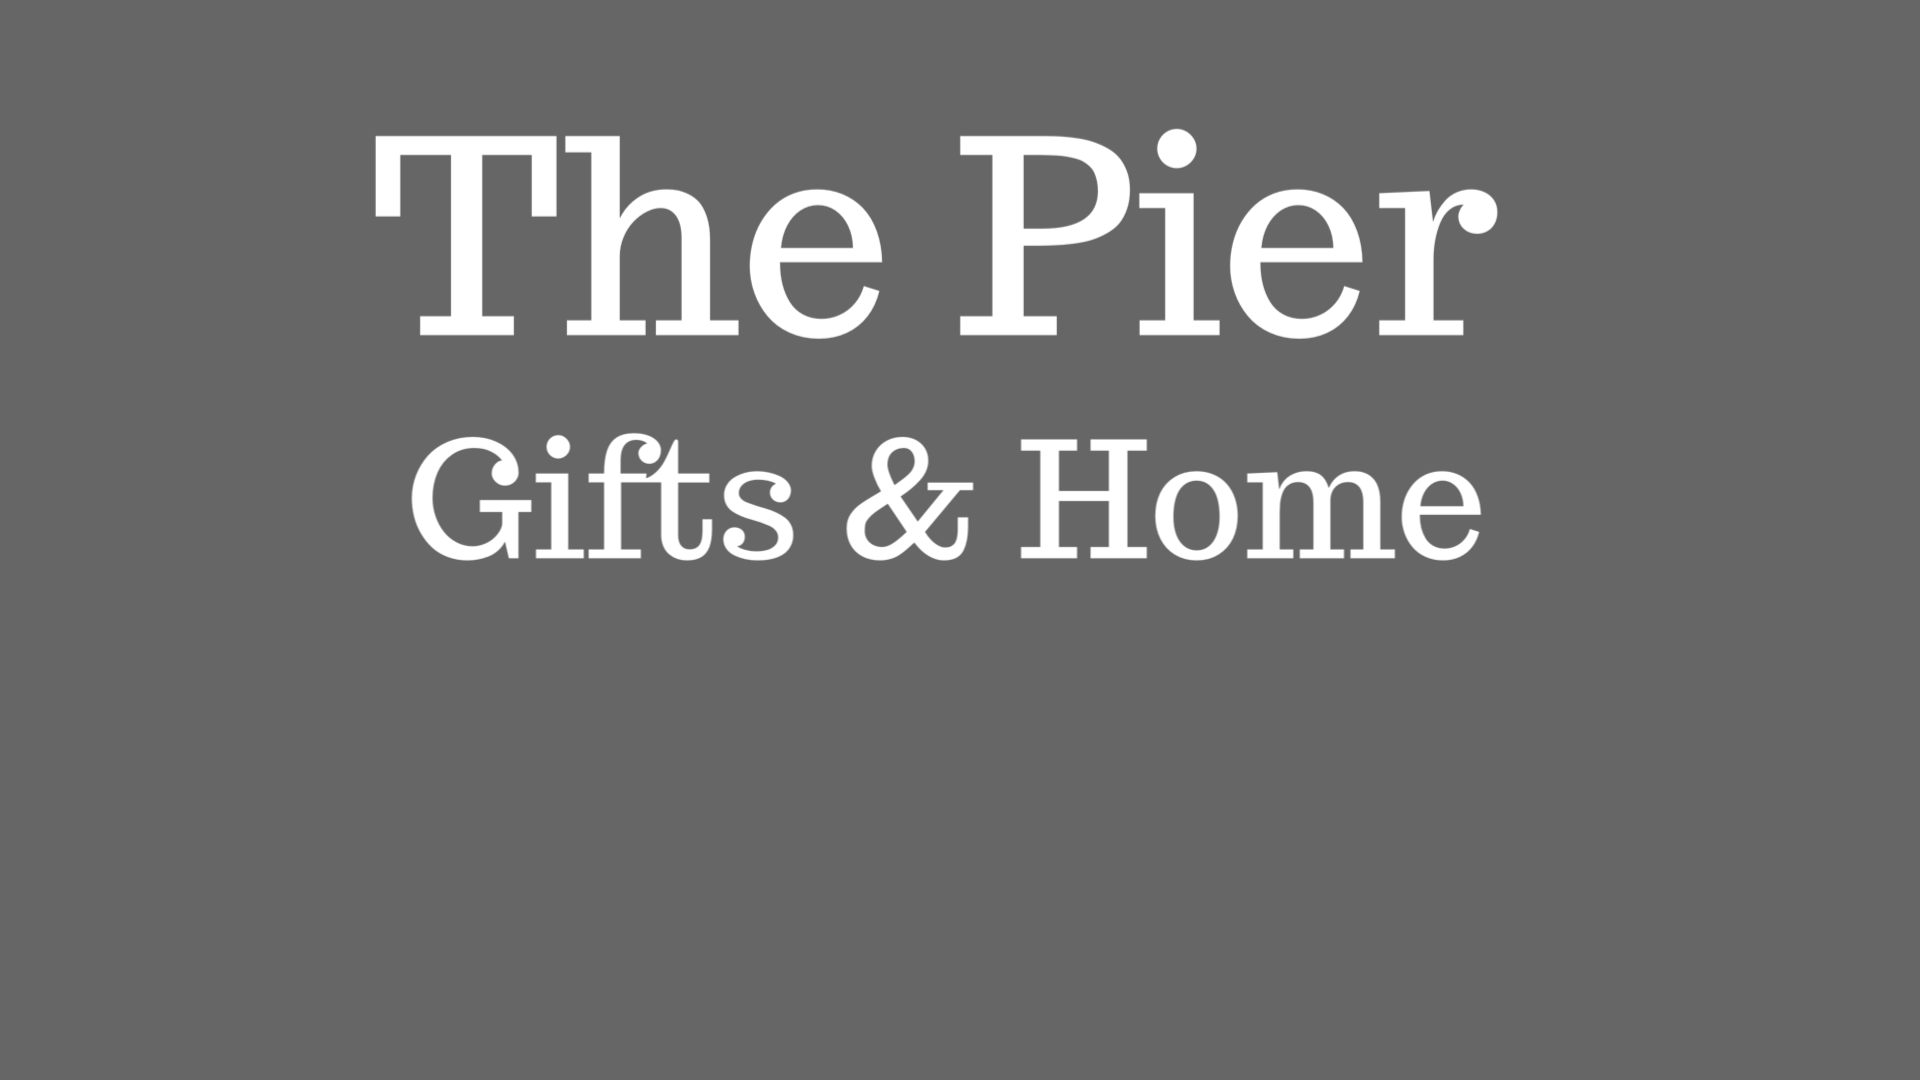 The Pier Gifts & Home